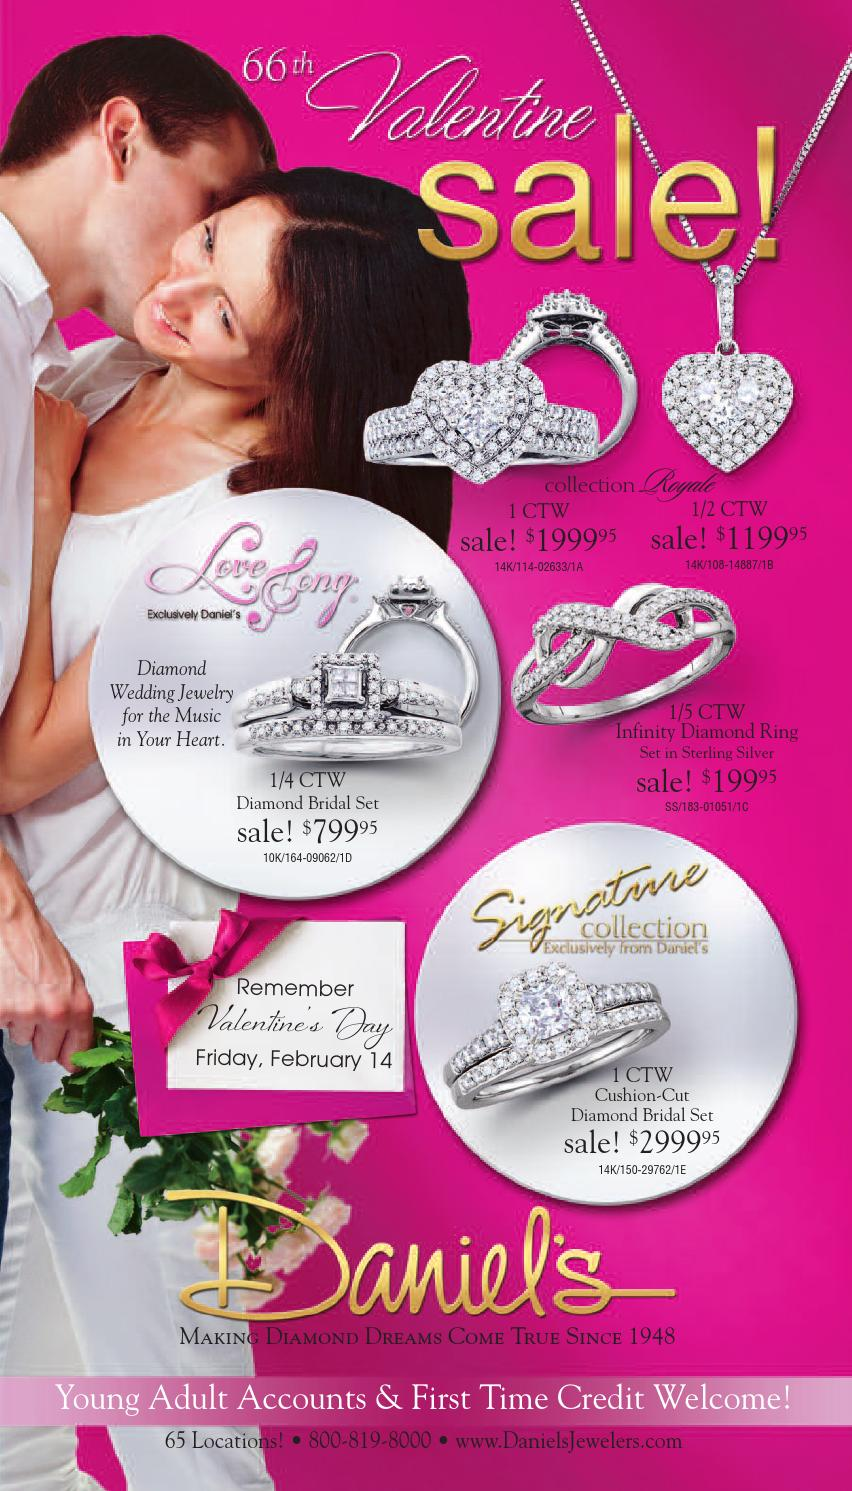 Daniel\'s Jewelers Valentine Sale! by Daniel\'s Jewelers - issuu